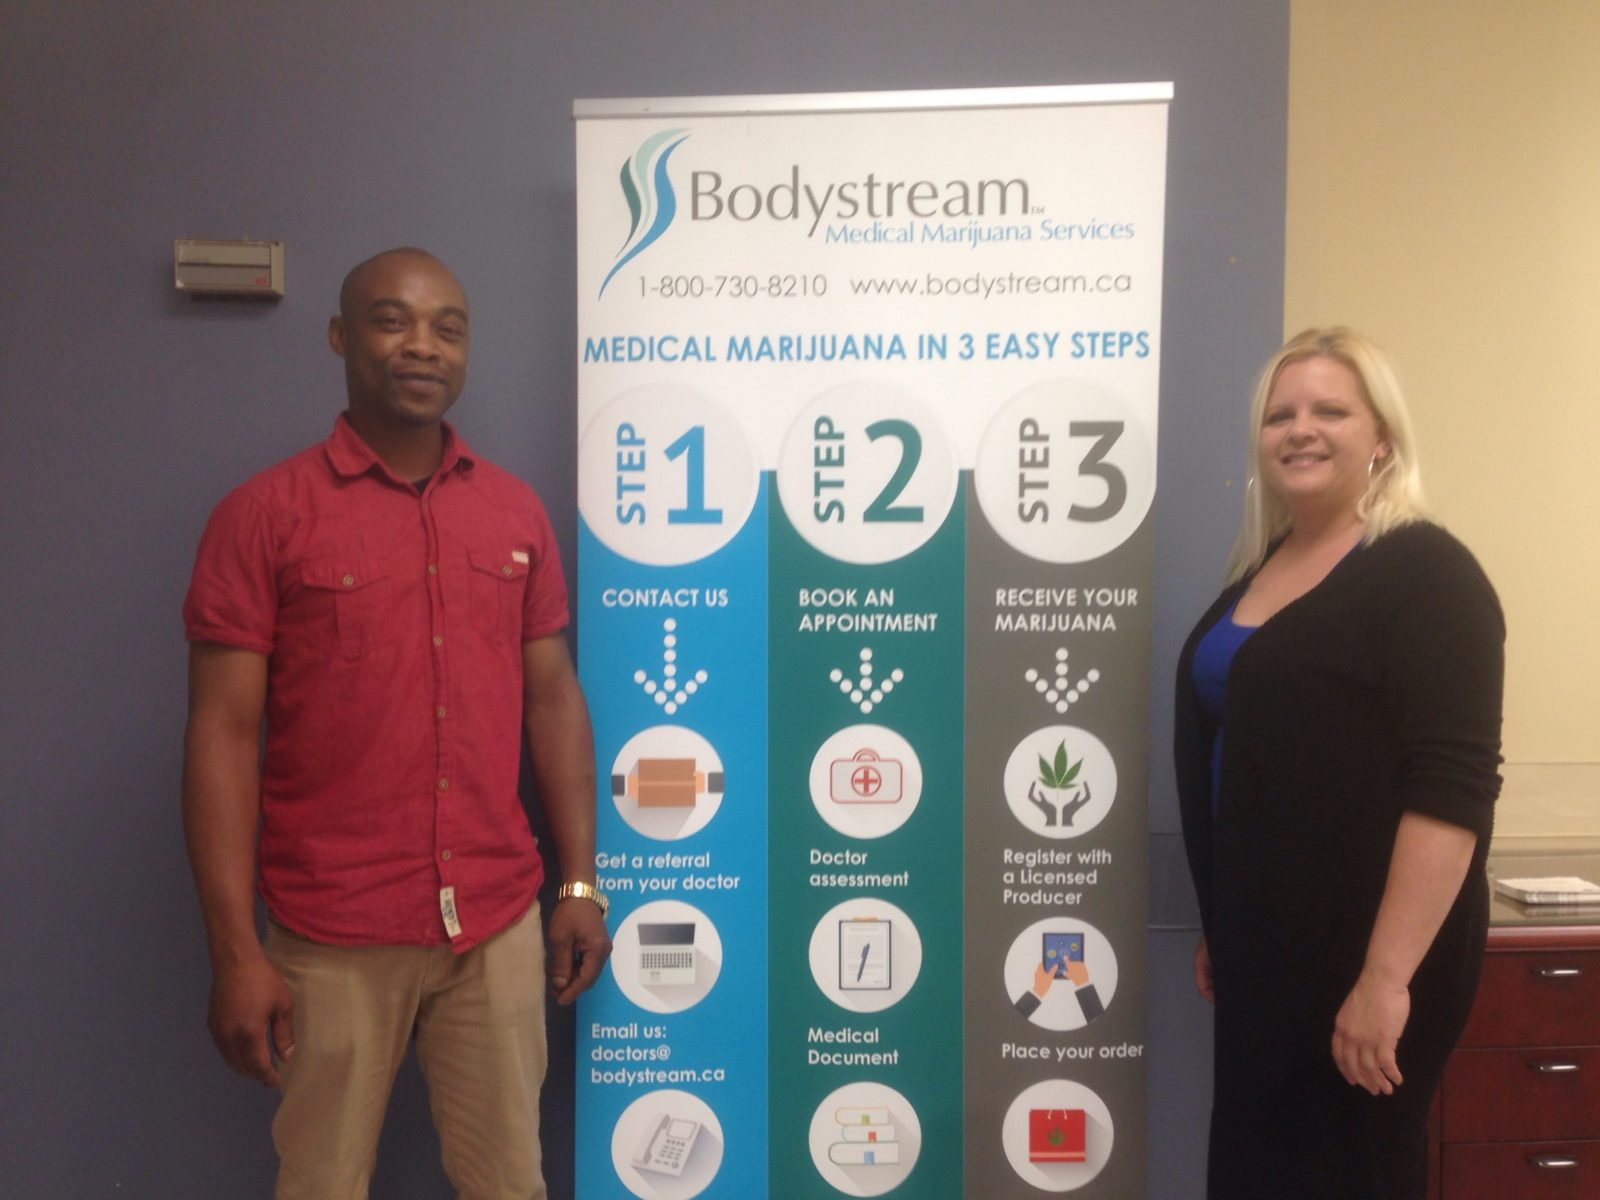 Dwight Simpson(left) is the Medical Administrator at Bodystream Medical Marijuana Services, Crystal Ramdharry(right) is the Patient Educator at Bodystream Medical Marijuana Services.